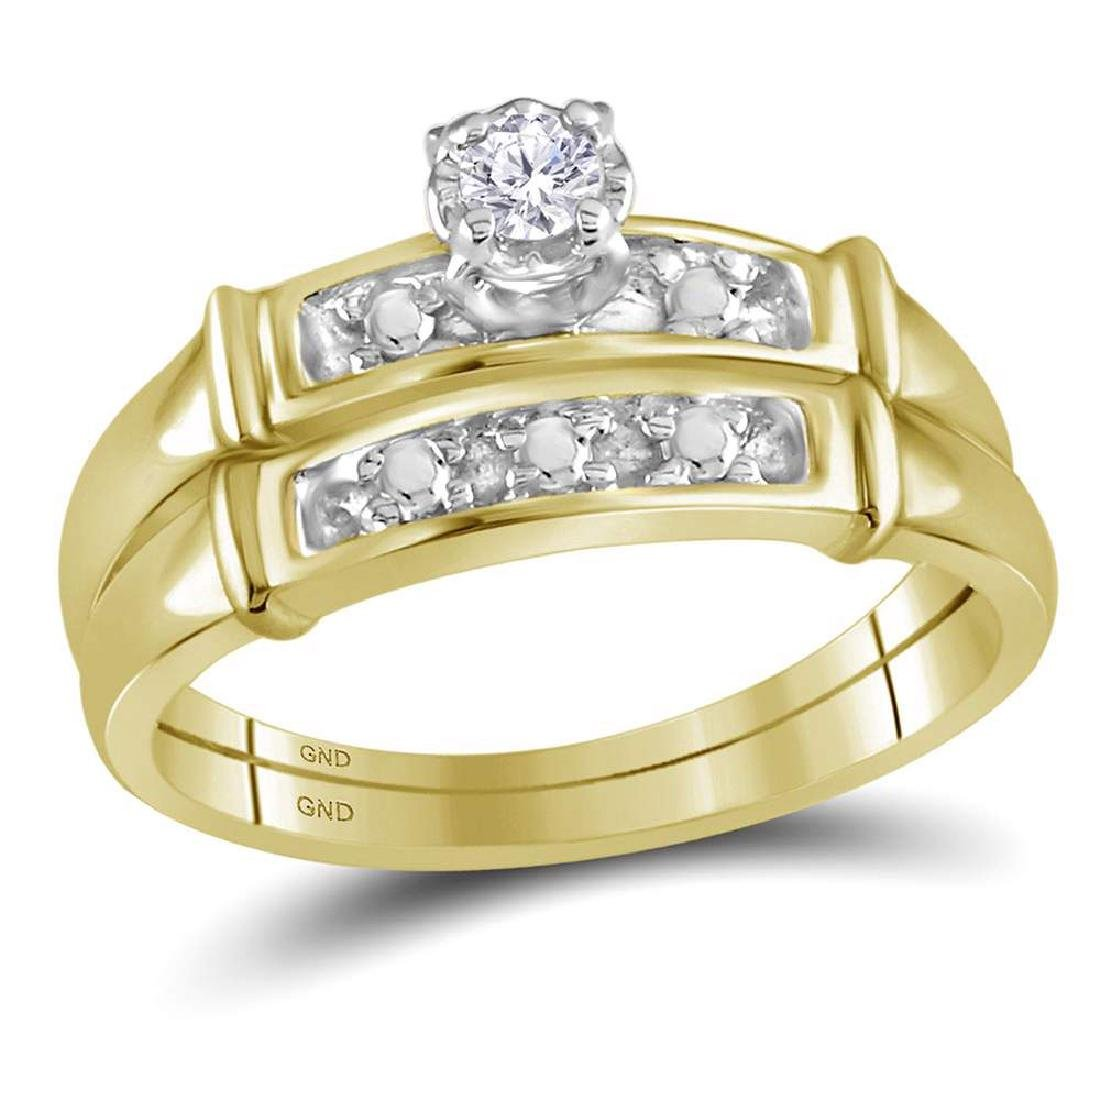 14k Yellow Gold His & Her Round Diamond Matching Bridal - 2